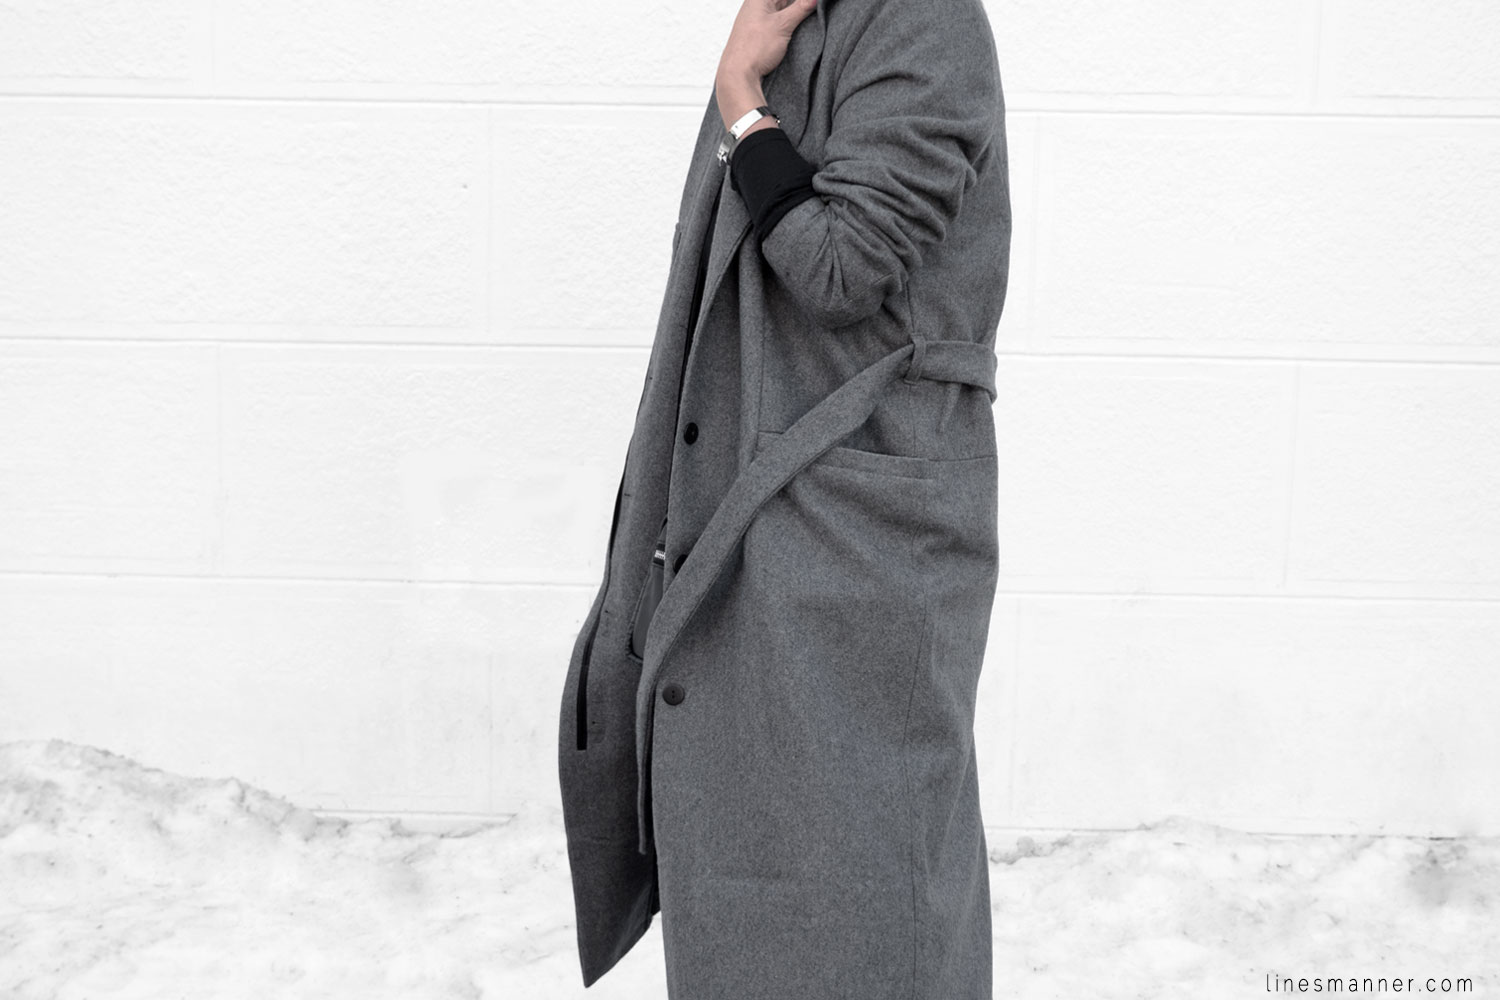 Lines-Manner-Simplicity-Neutral-Palette-Functional-Versatile-Timeless-Grey-Winter_Coat-Details-Essentials-Minimal-Basics-8